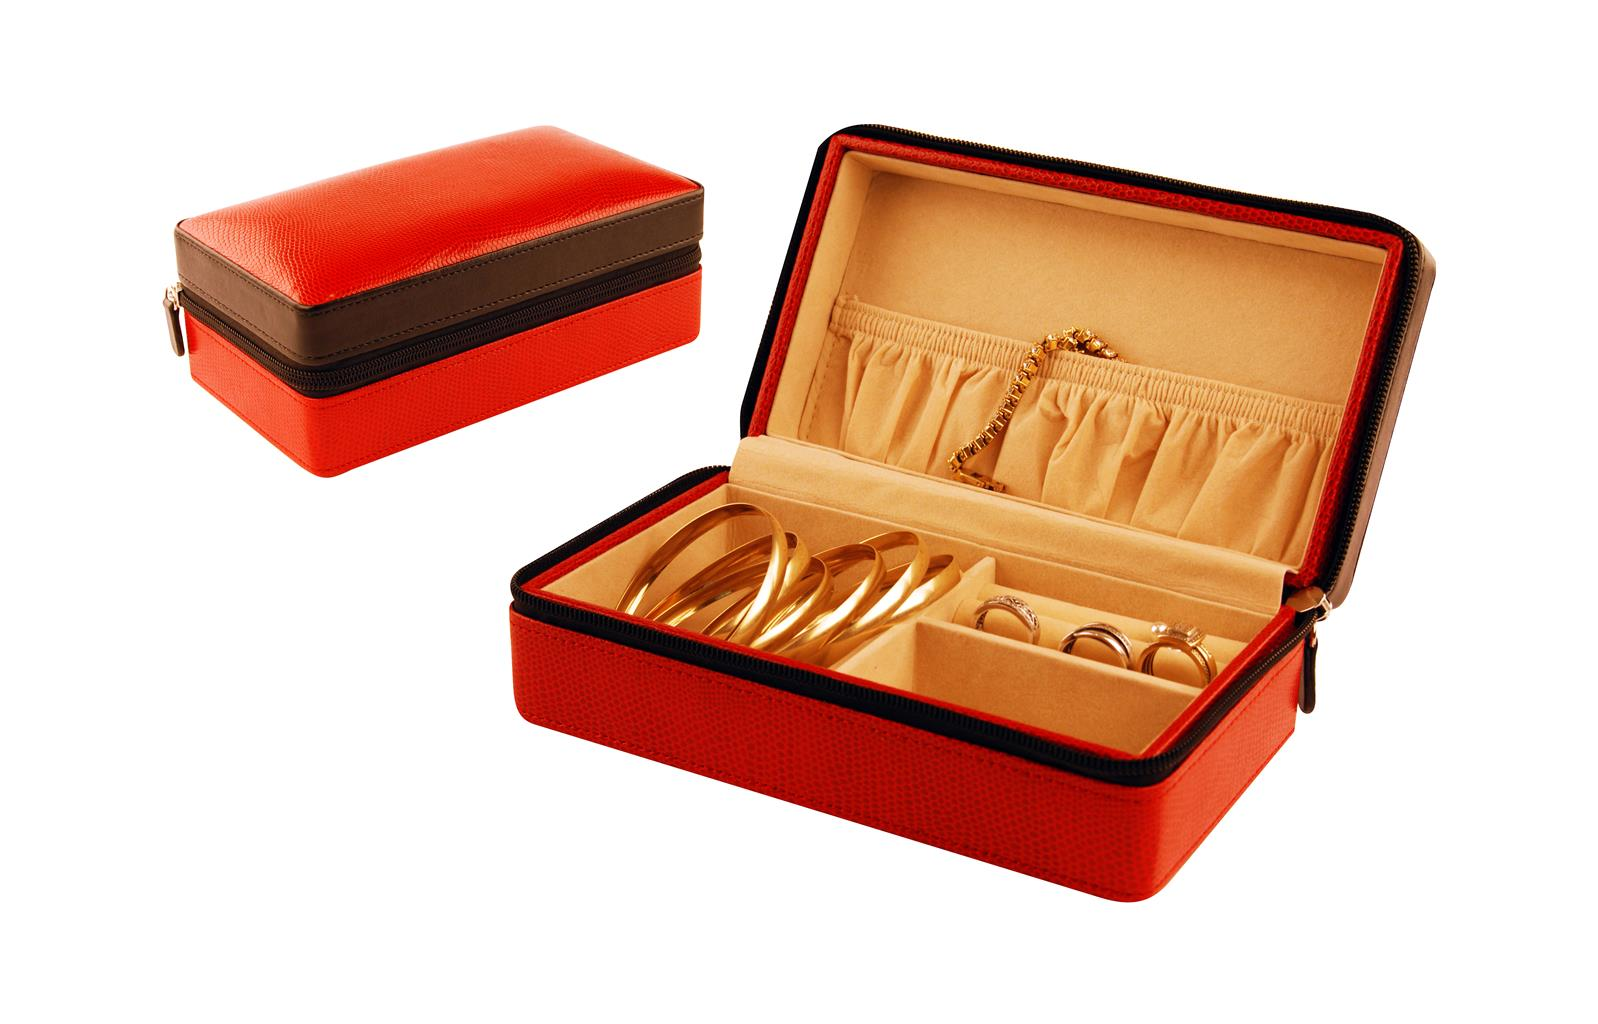 RED AND BLACK JEWELERY BOX!! BEST BUY AMAZING DEALS!!!